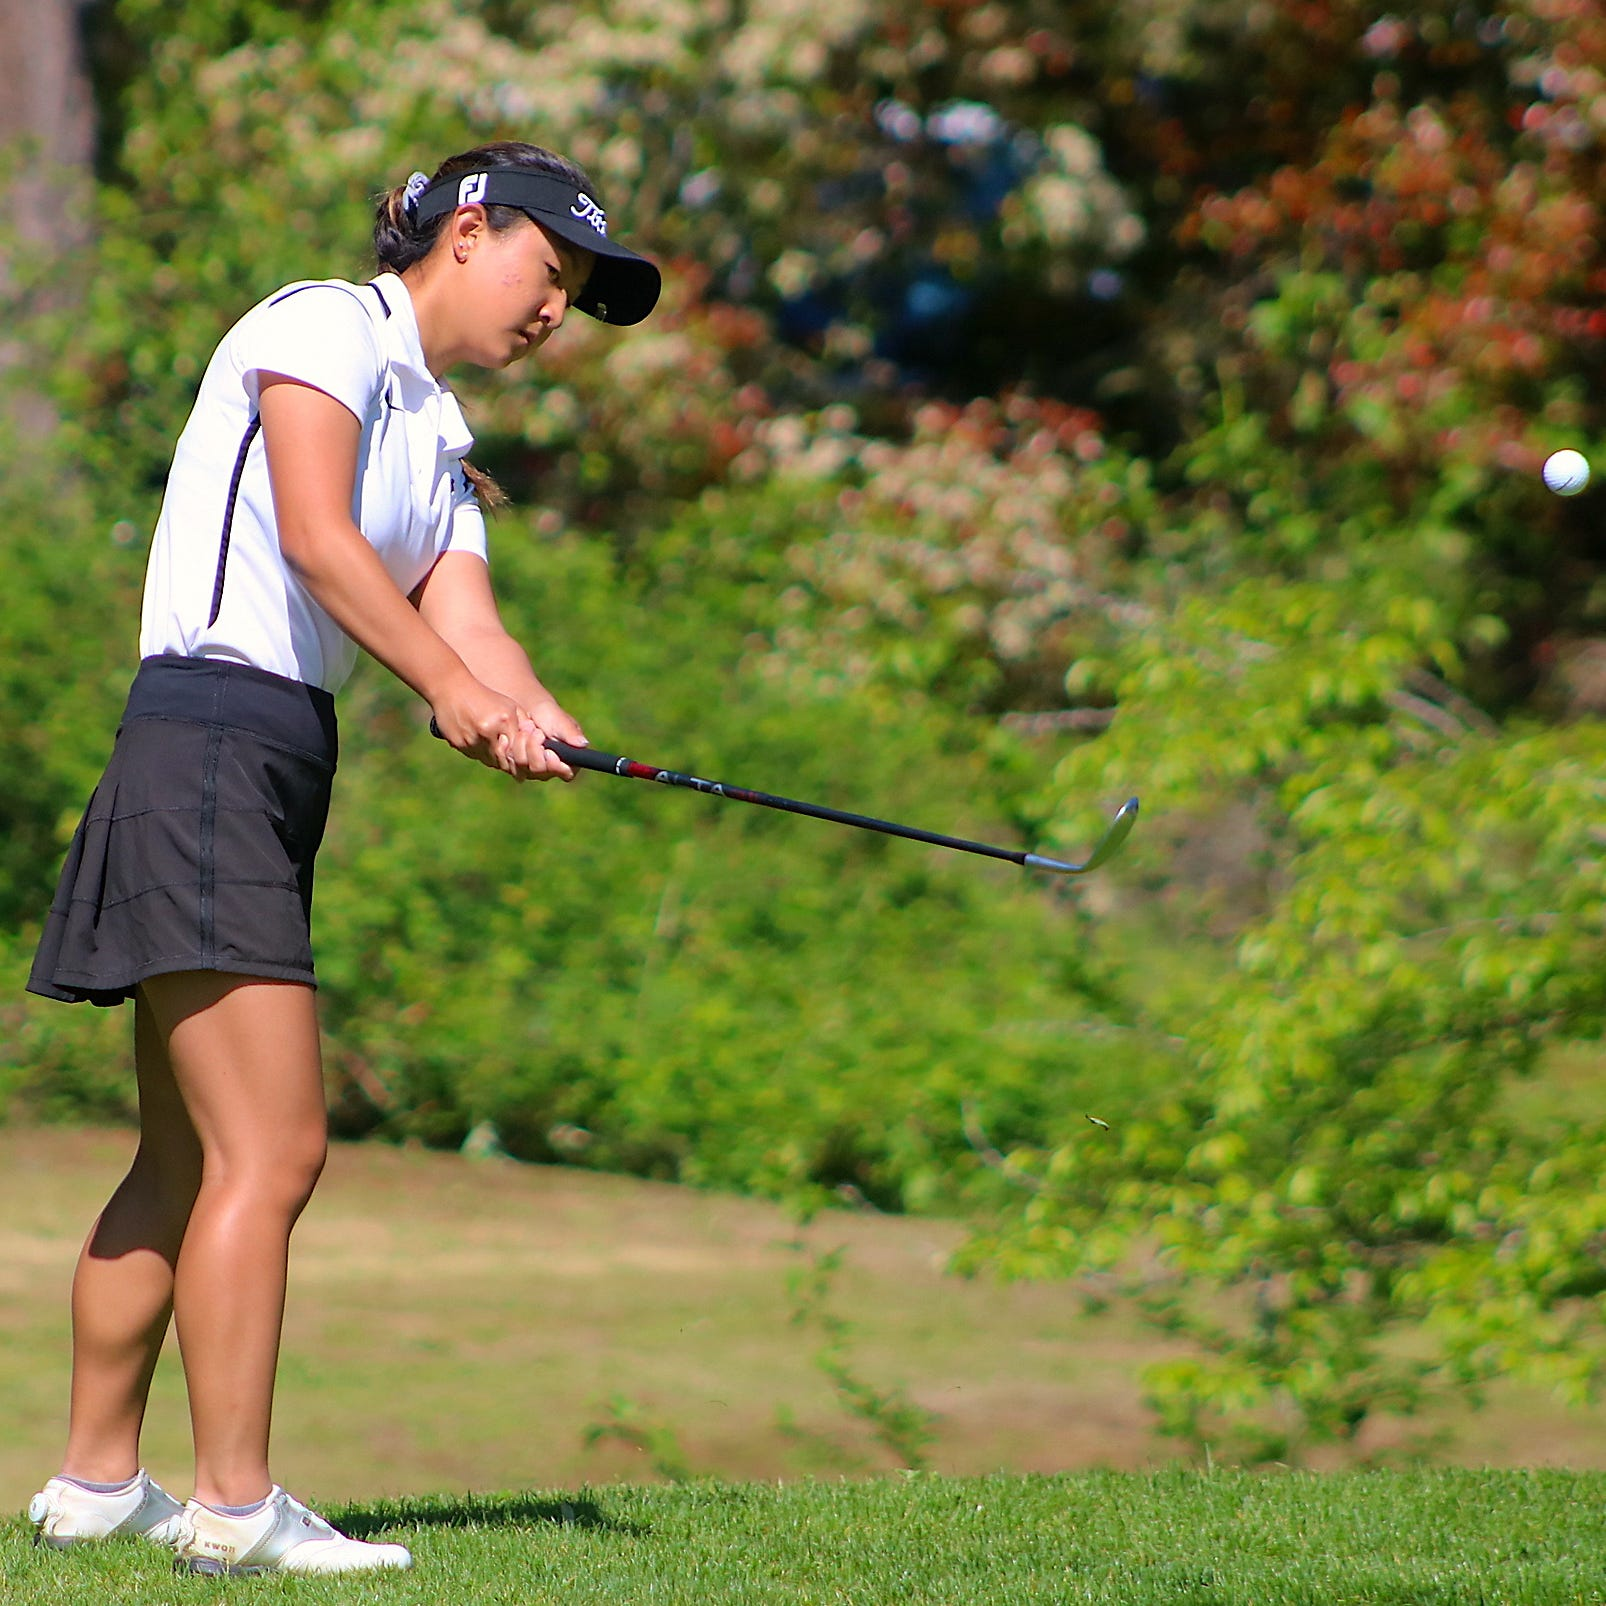 Central Kitsap golfer Kwon completes four-peat in state golf